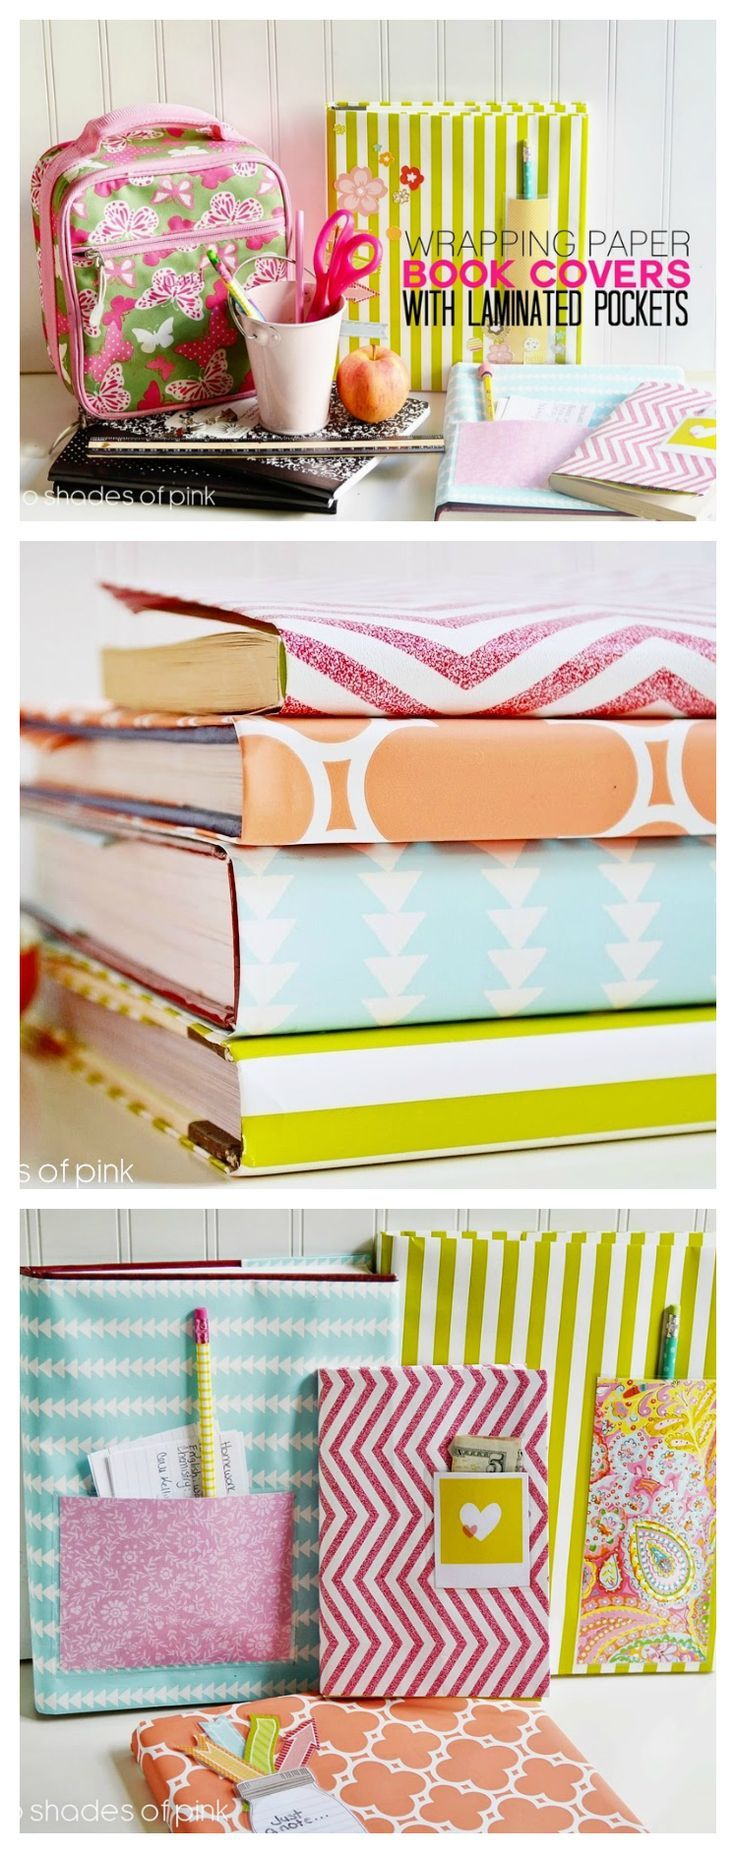 DIY Wrapping Paper Book Covers